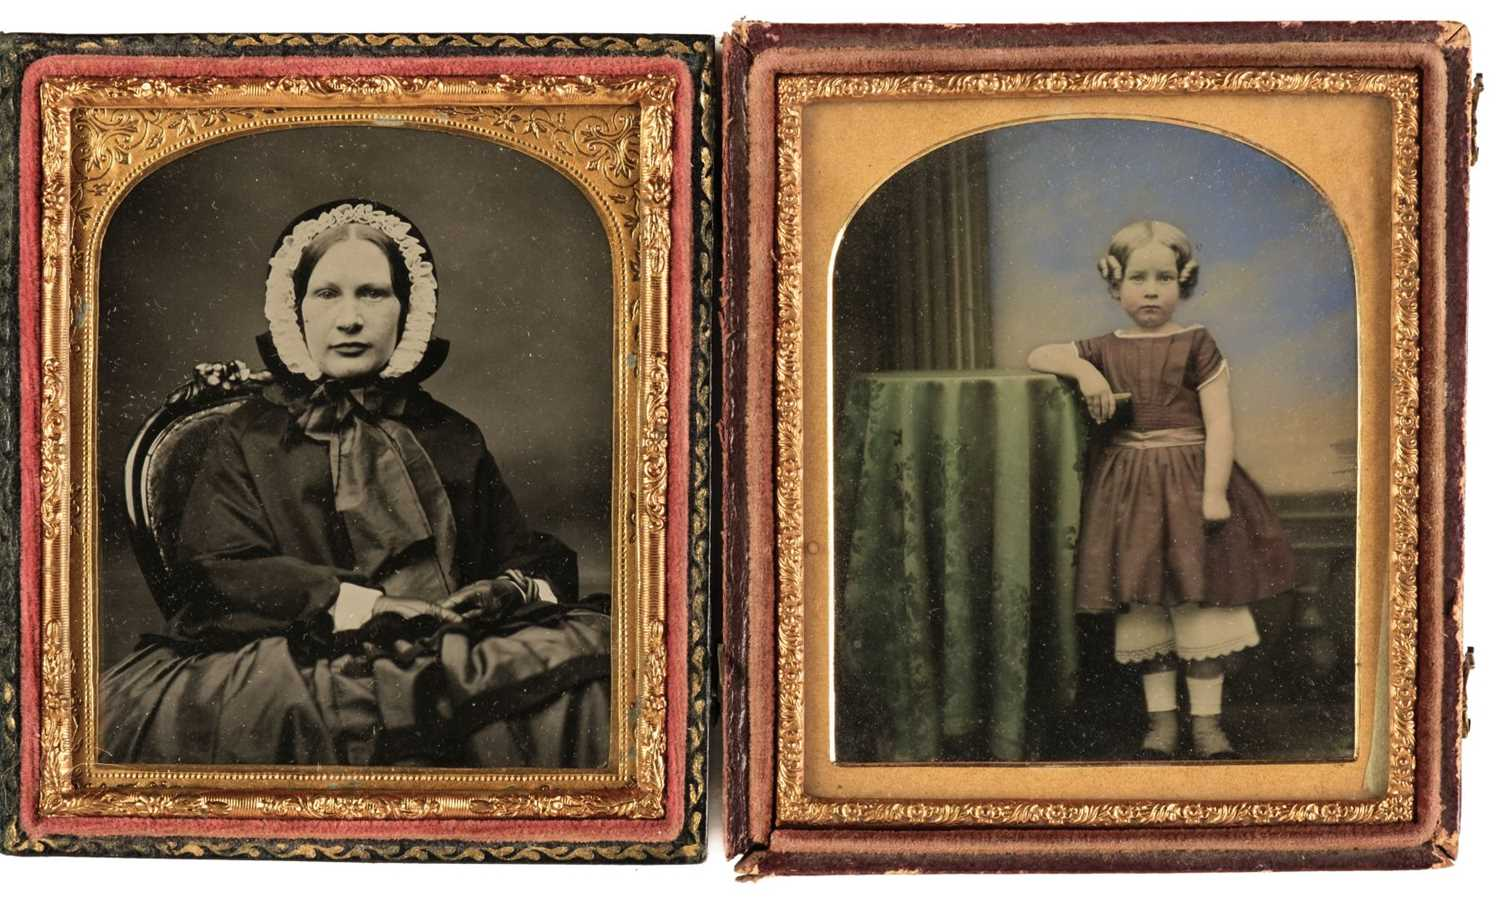 Lot 1 - Ambrotypes. A group of 22 ambrotypes of women and some children, circa 1860s